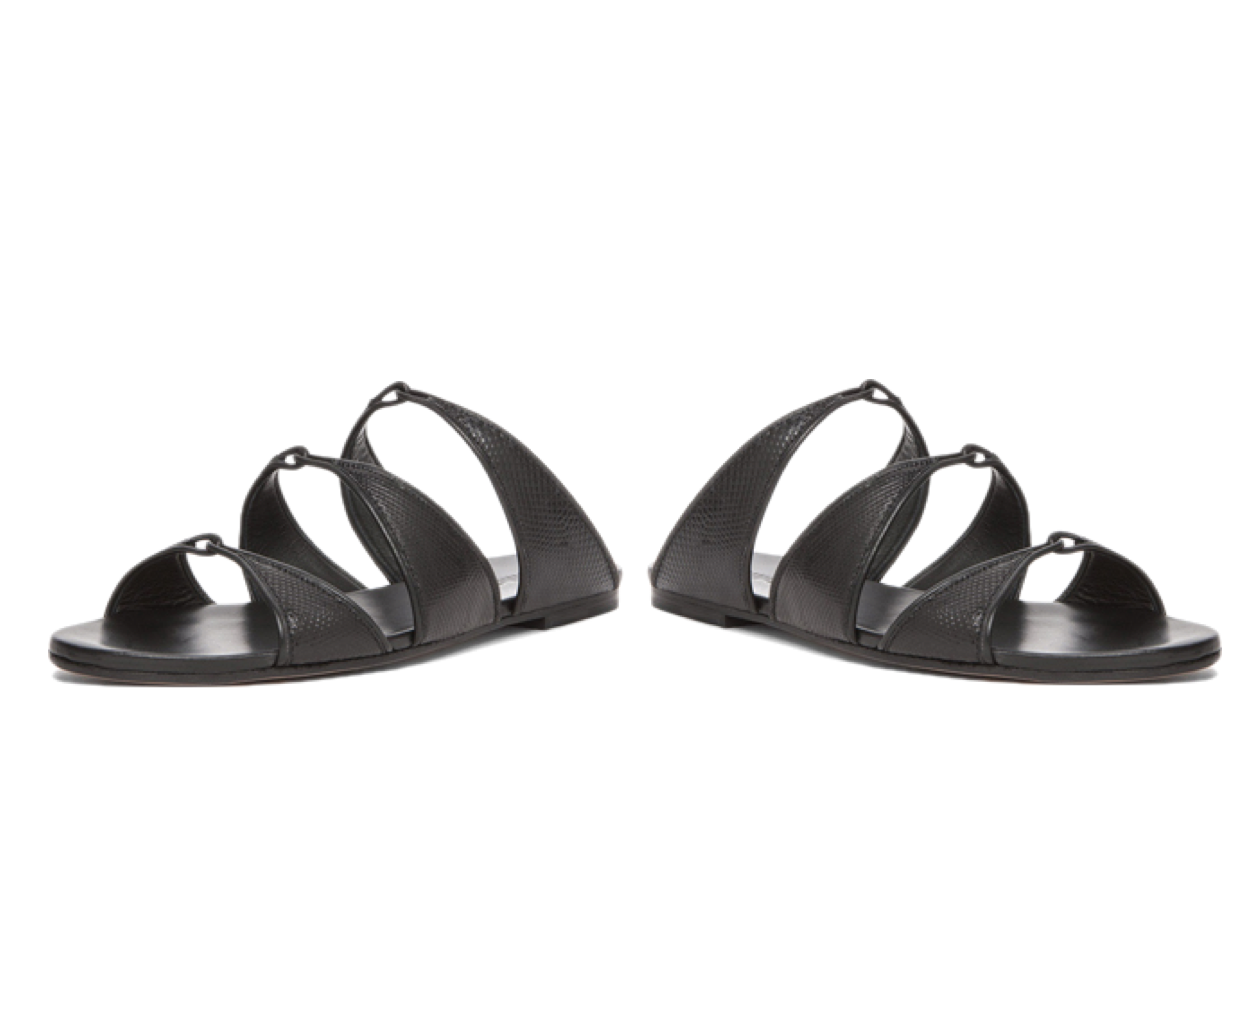 Chloe Karung Slip On Sandals